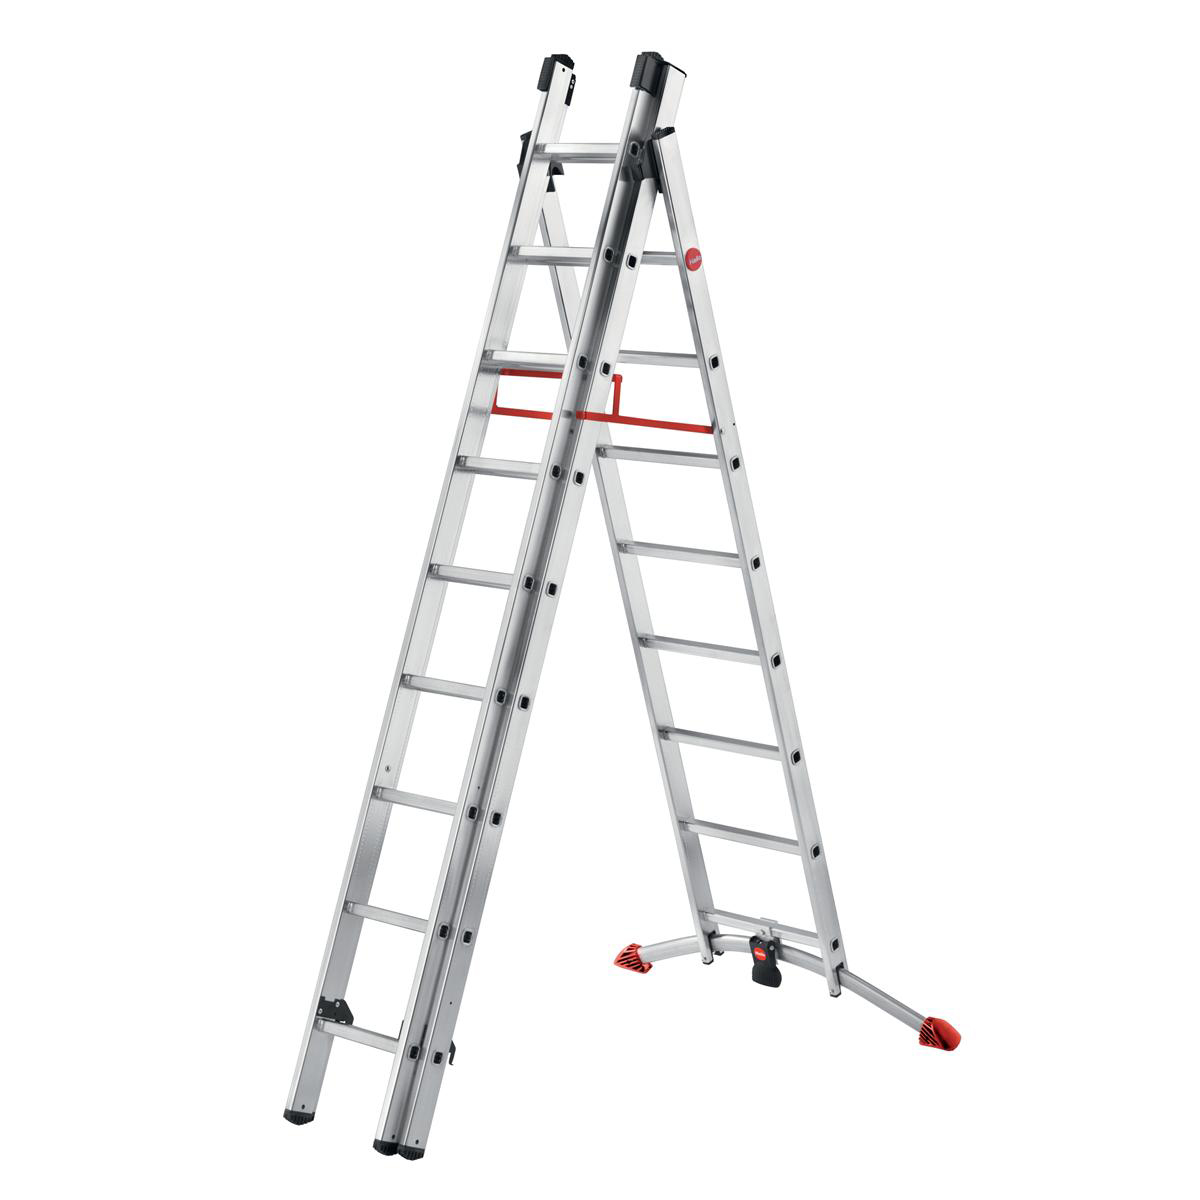 Ladders Combi Ladder 3 Section Capacity 150kg Rungs 2x9 and 1x8 for H6.7m 21.7kg Aluminium